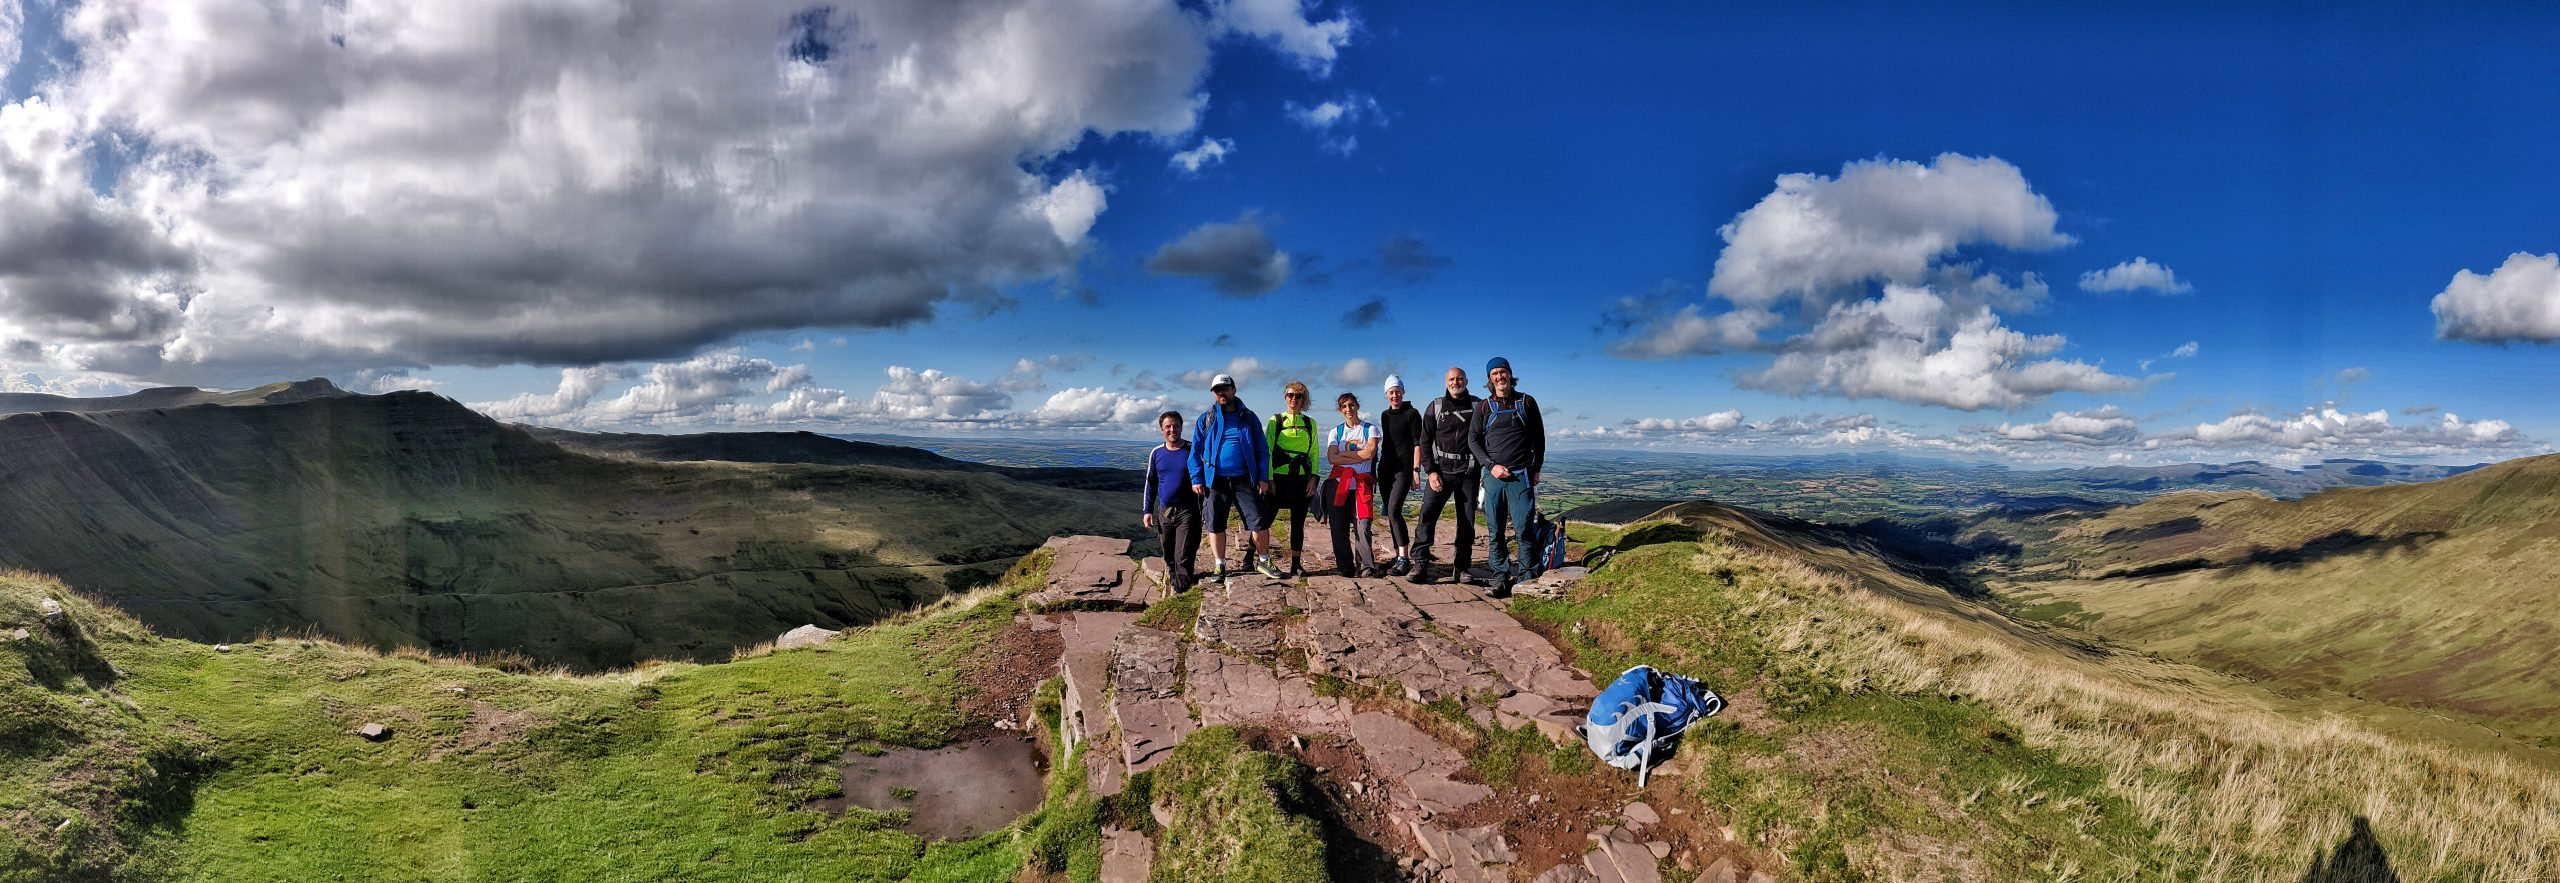 Vertical events team in the Brecon Beacons